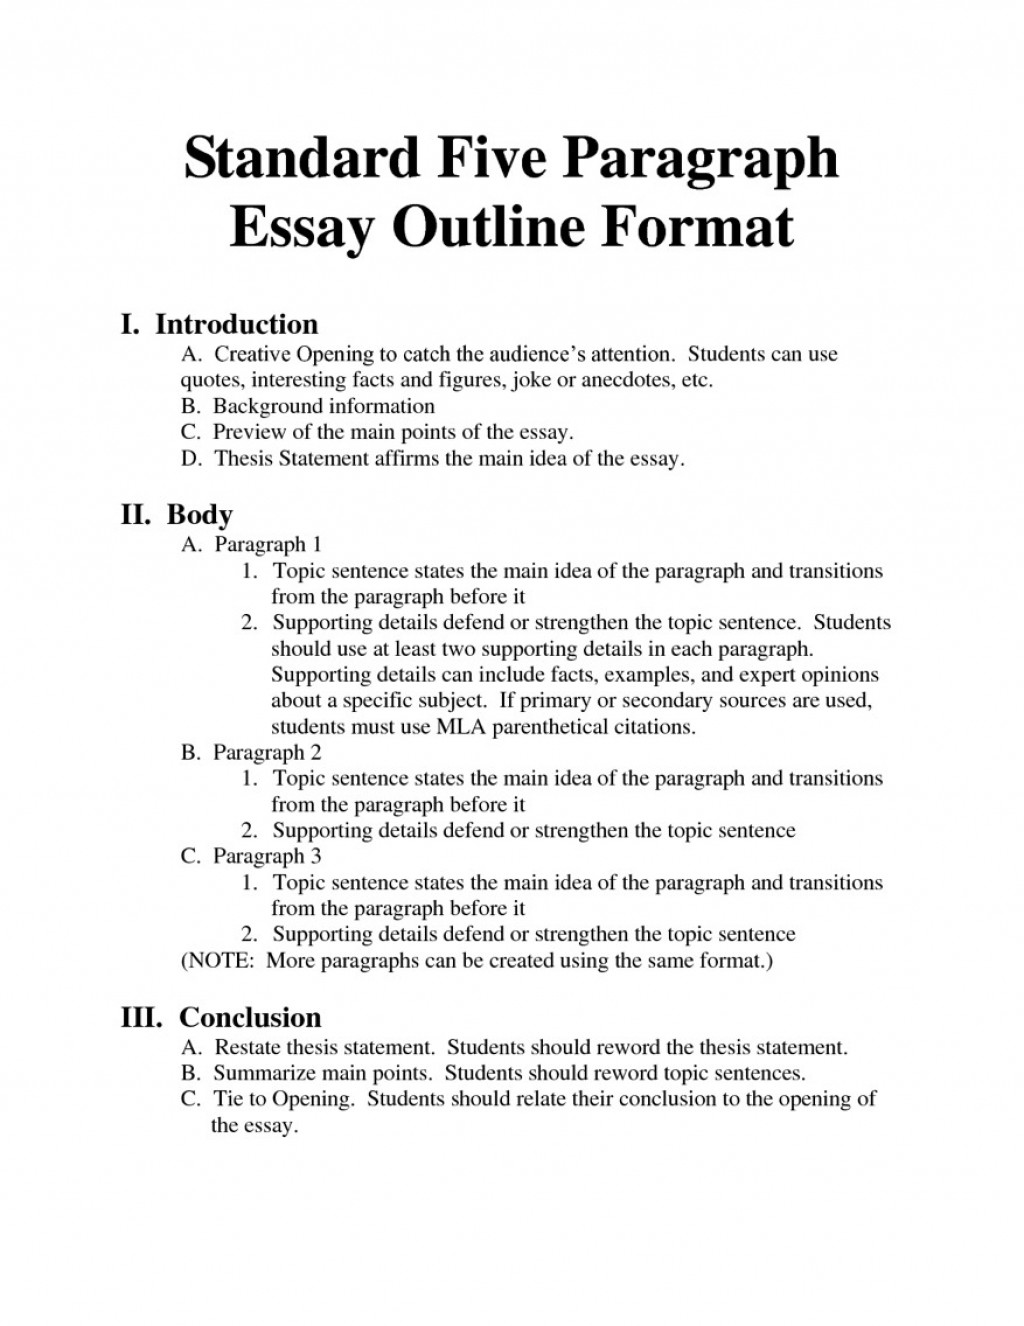 007 Essay Example Paragraph Best 5 Topics For High School Middle Large